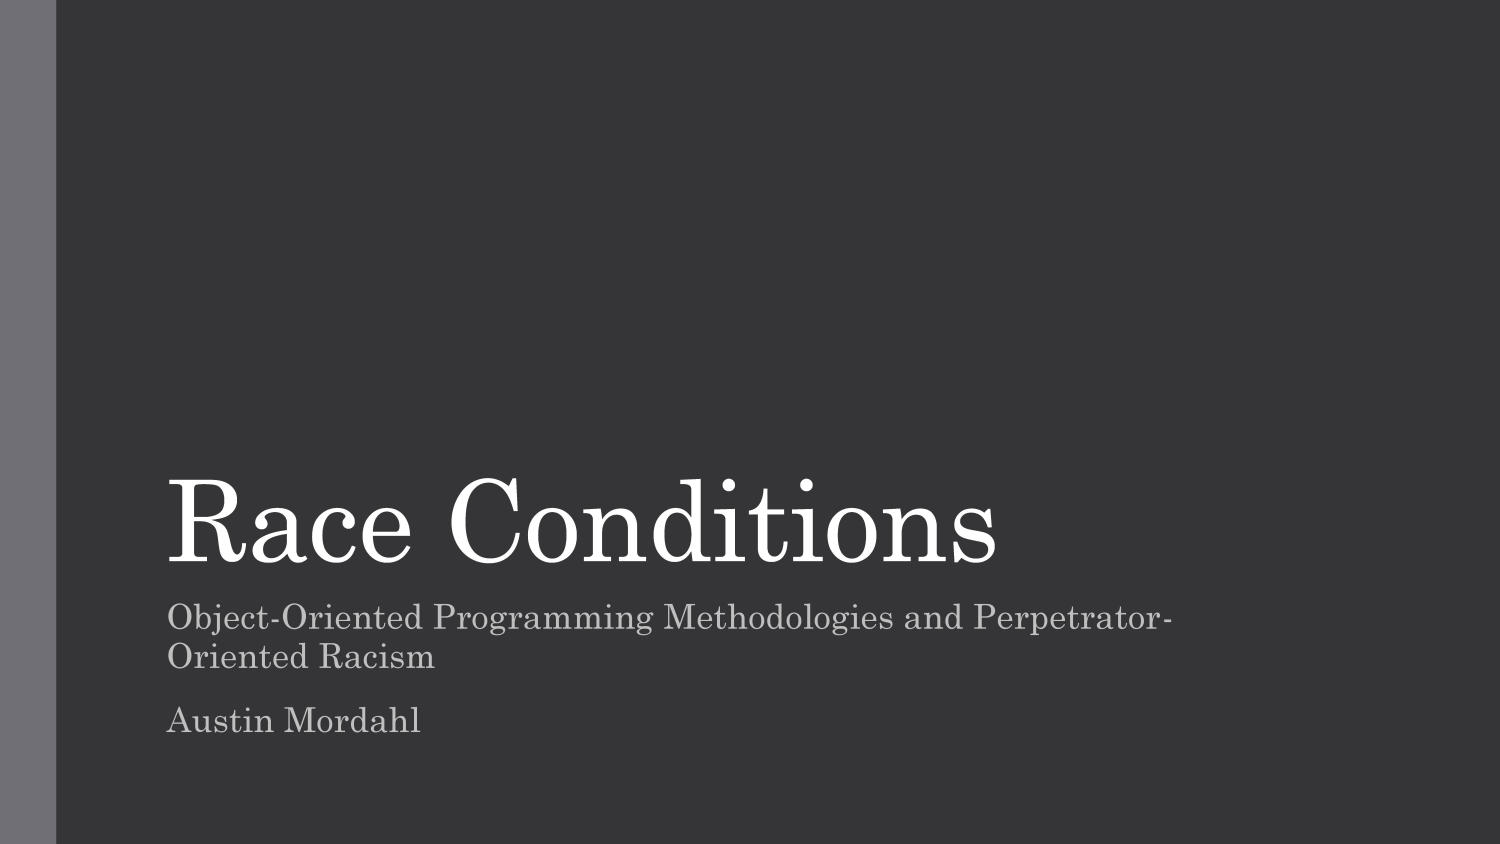 Race Conditions: Object-Oriented Programming Methodologies and Perpetrator-Oriented Racism                                                                                                      1